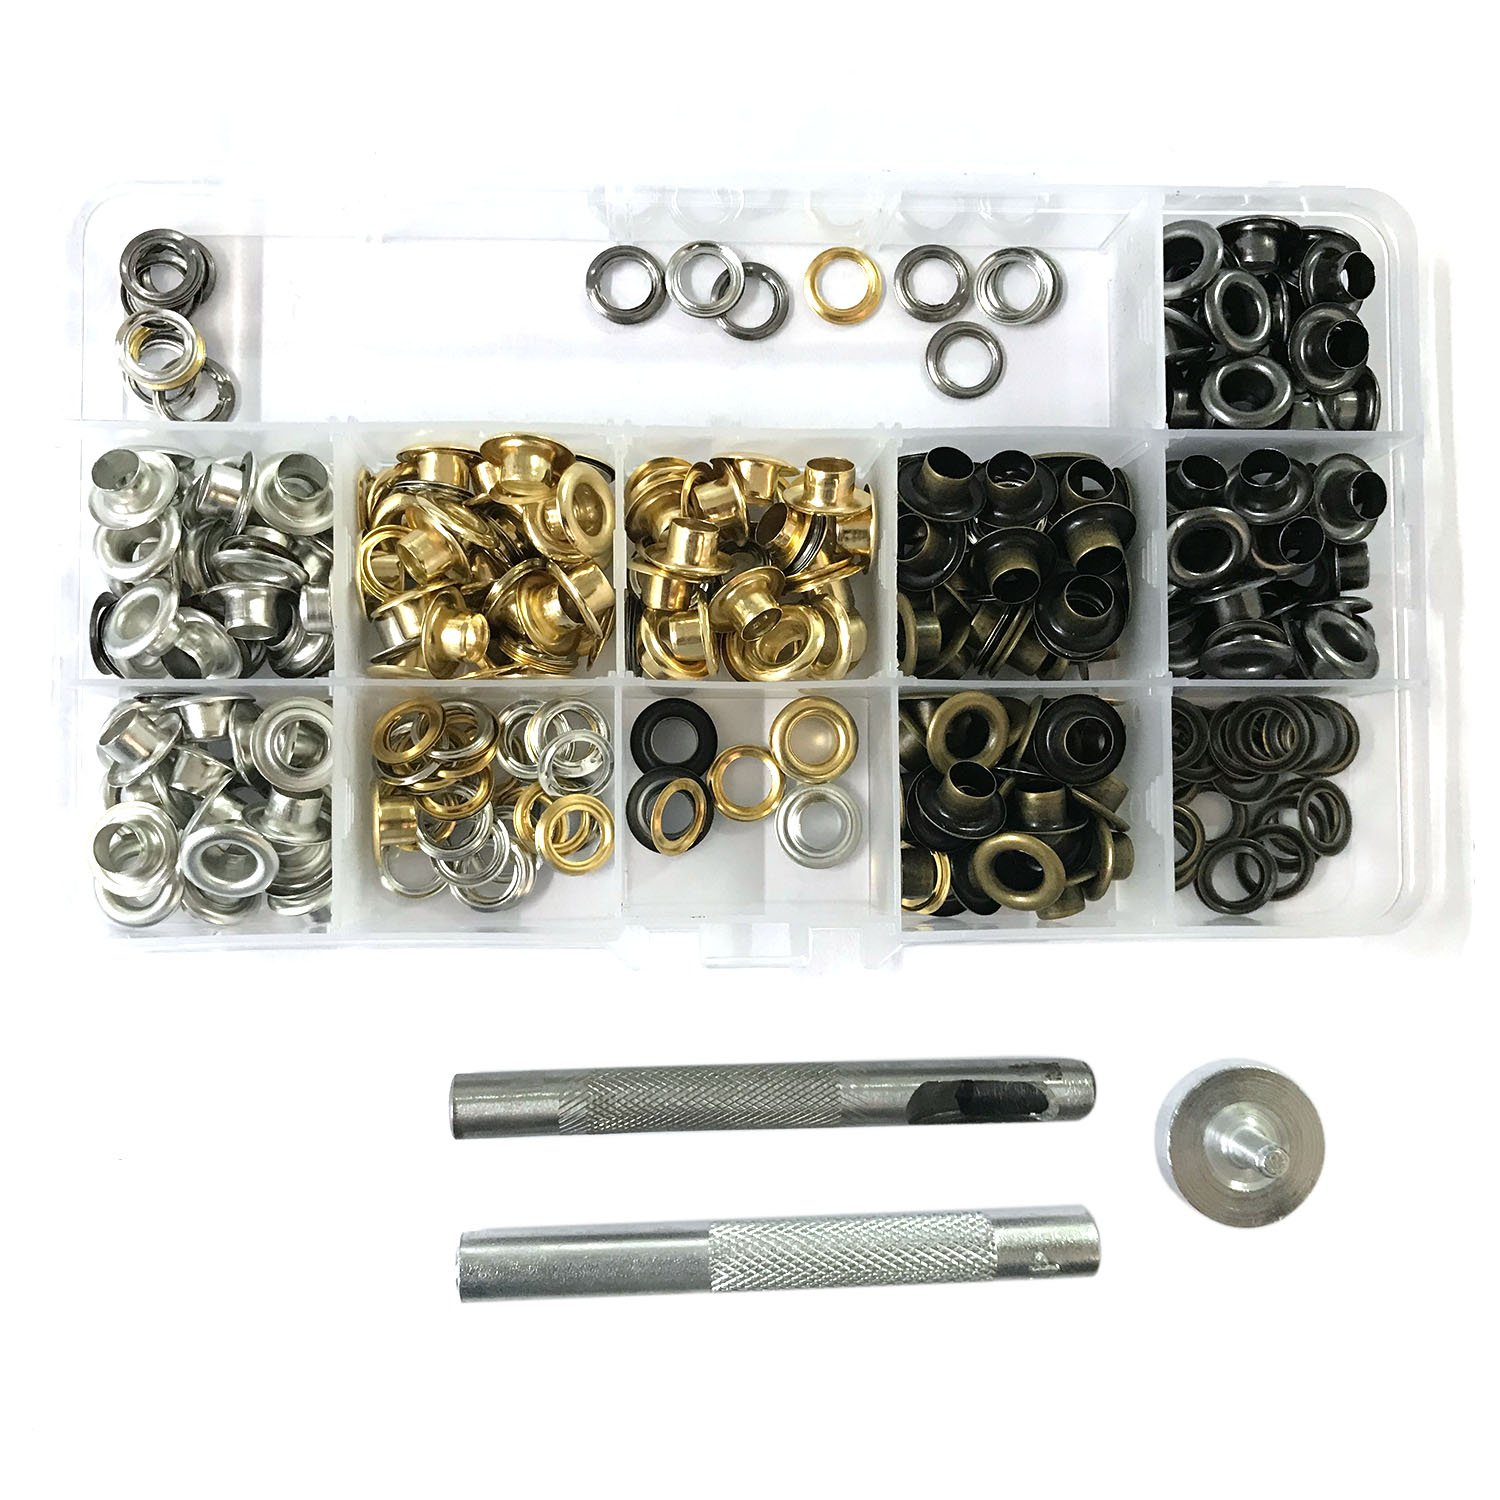 Trimming Shop Eyelets Grommet Kit 200 Pcs Of Gold, Silver, Bronze & Gunmetal, 5mm, With Set of 3 Fixing Tools for Clothes, Apparel, Leather, Canvas, Shoe, Self Backing, Home Use by